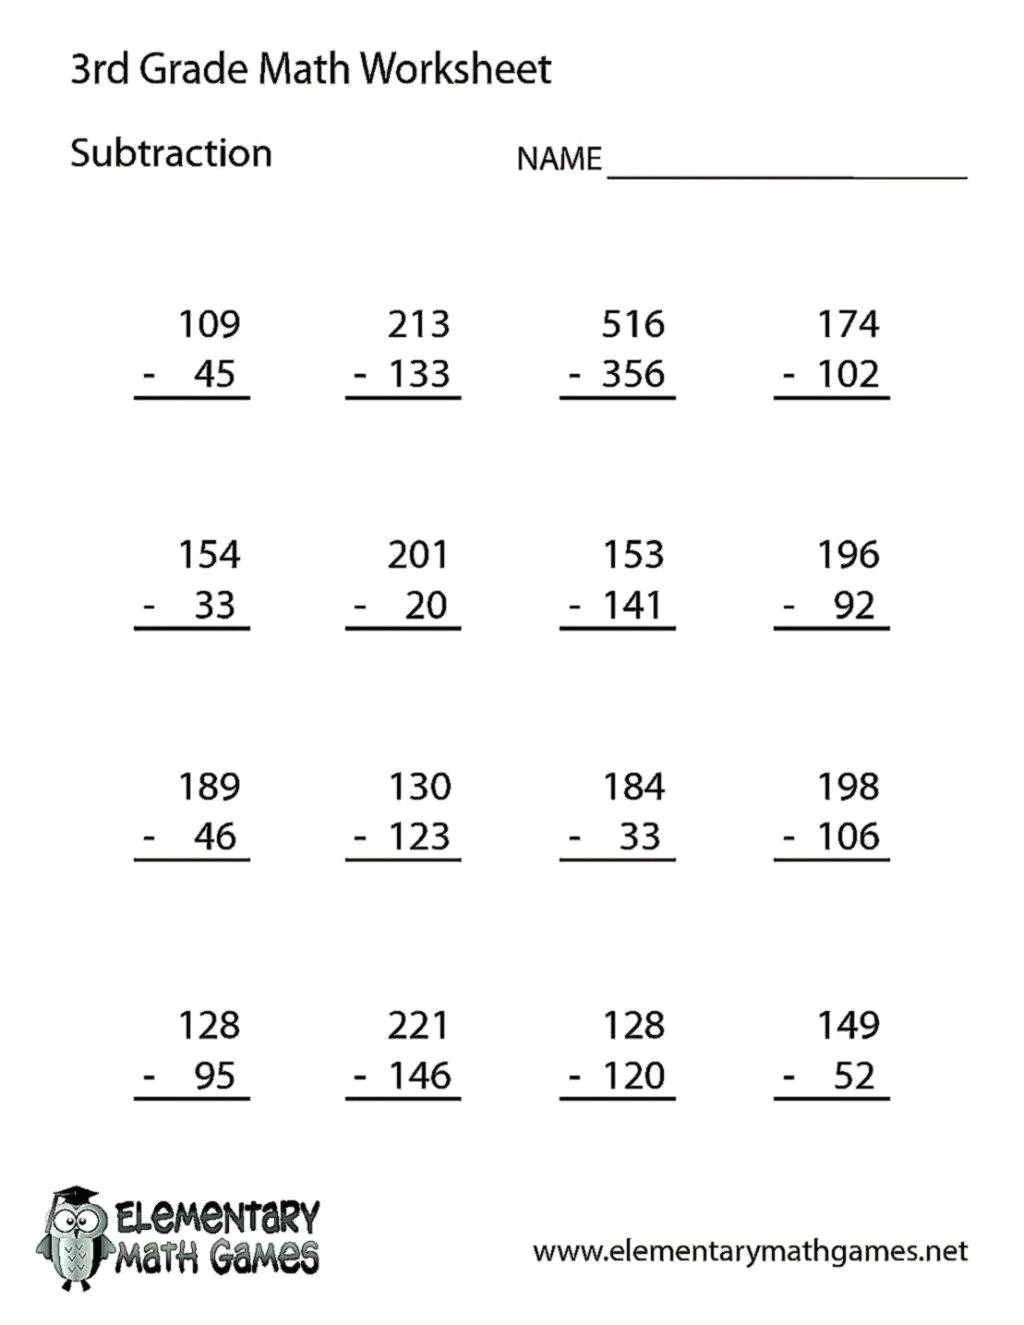 Capitalization Worksheet Middle School Capitalization Worksheets Middle School Punctuation and